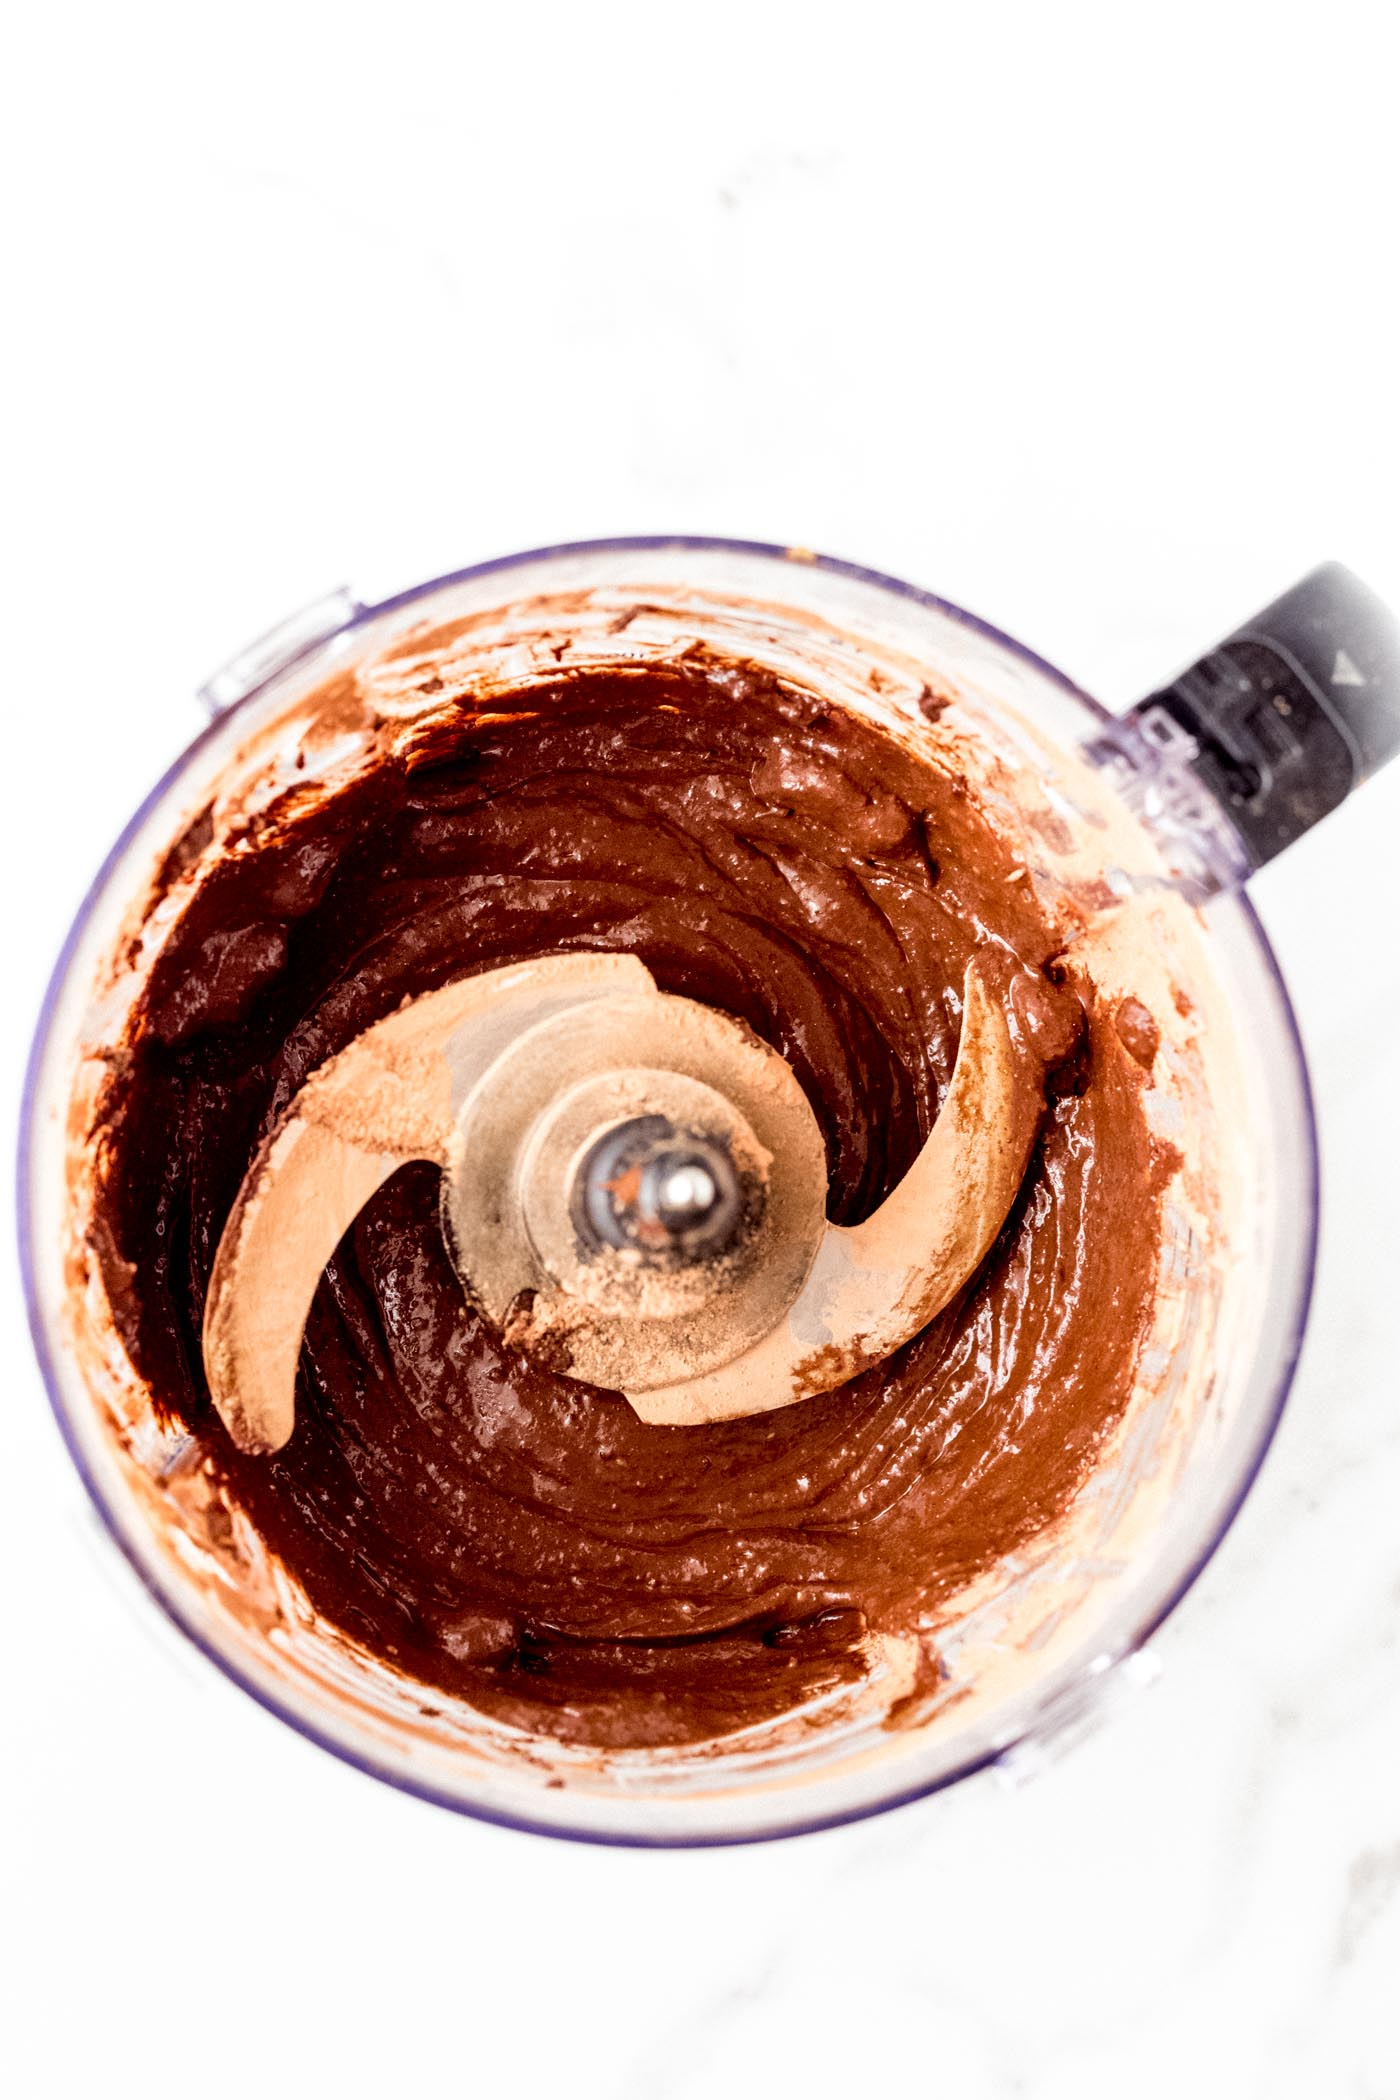 Chocolate brownie batter in food processor on white background